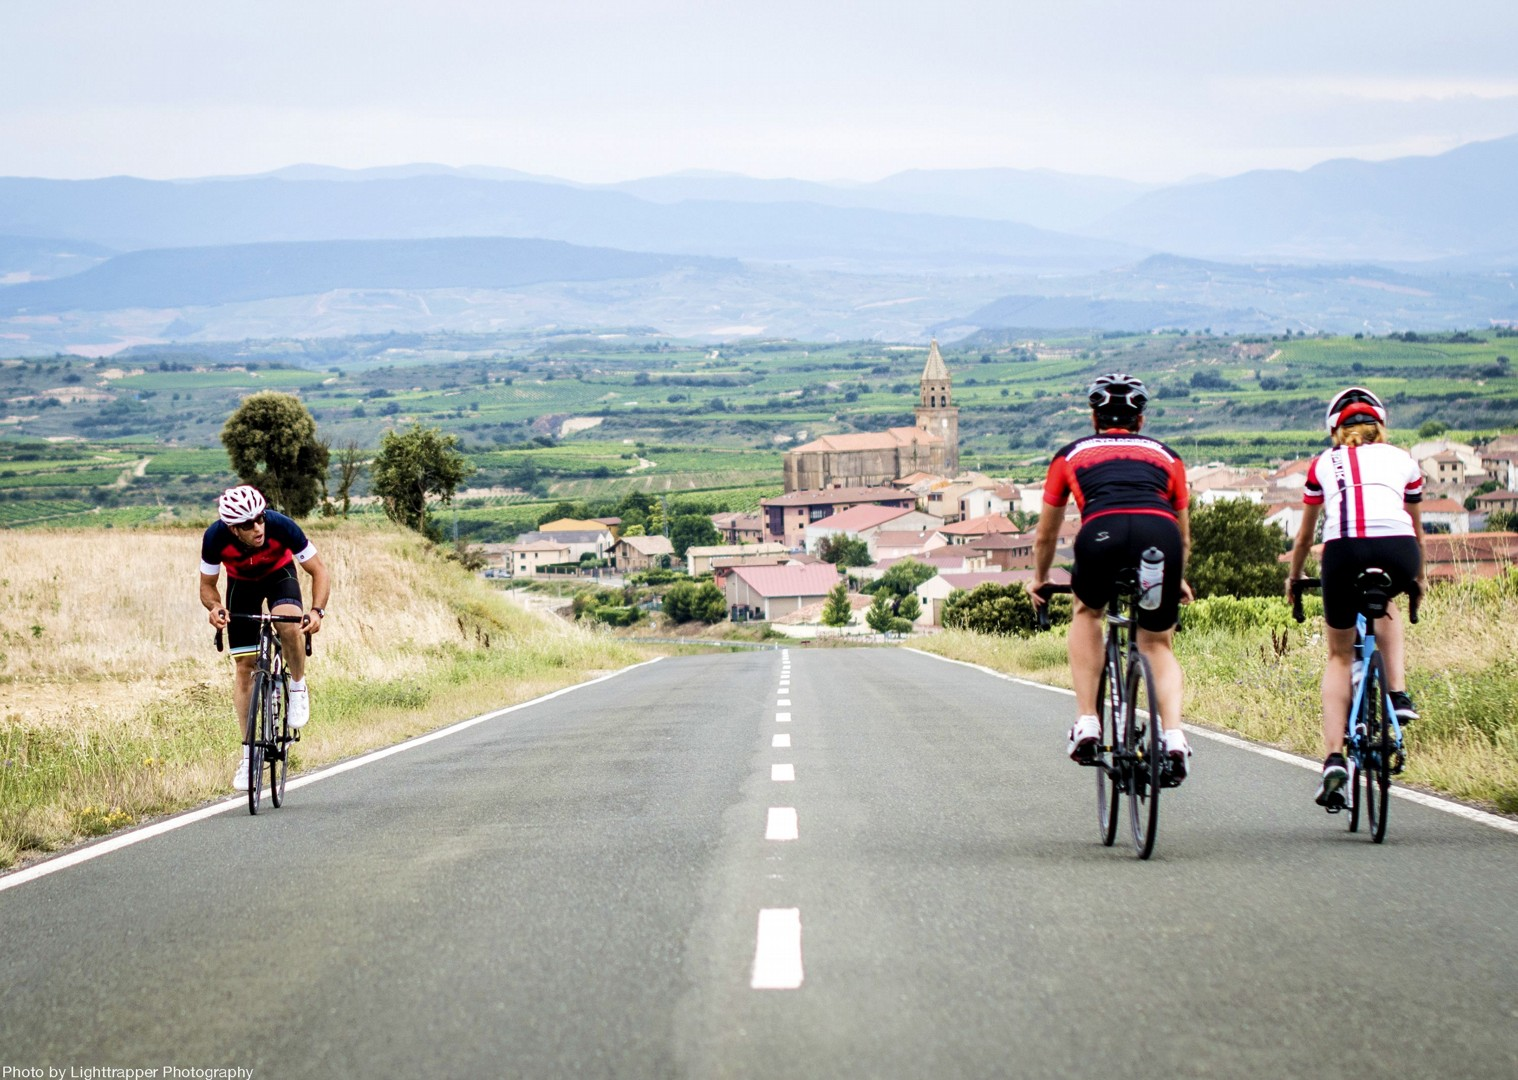 day6_northern_spain_172.jpg - Northern Spain - La Rioja - Ruta del Vino - Guided Road Cycling Holiday - Road Cycling